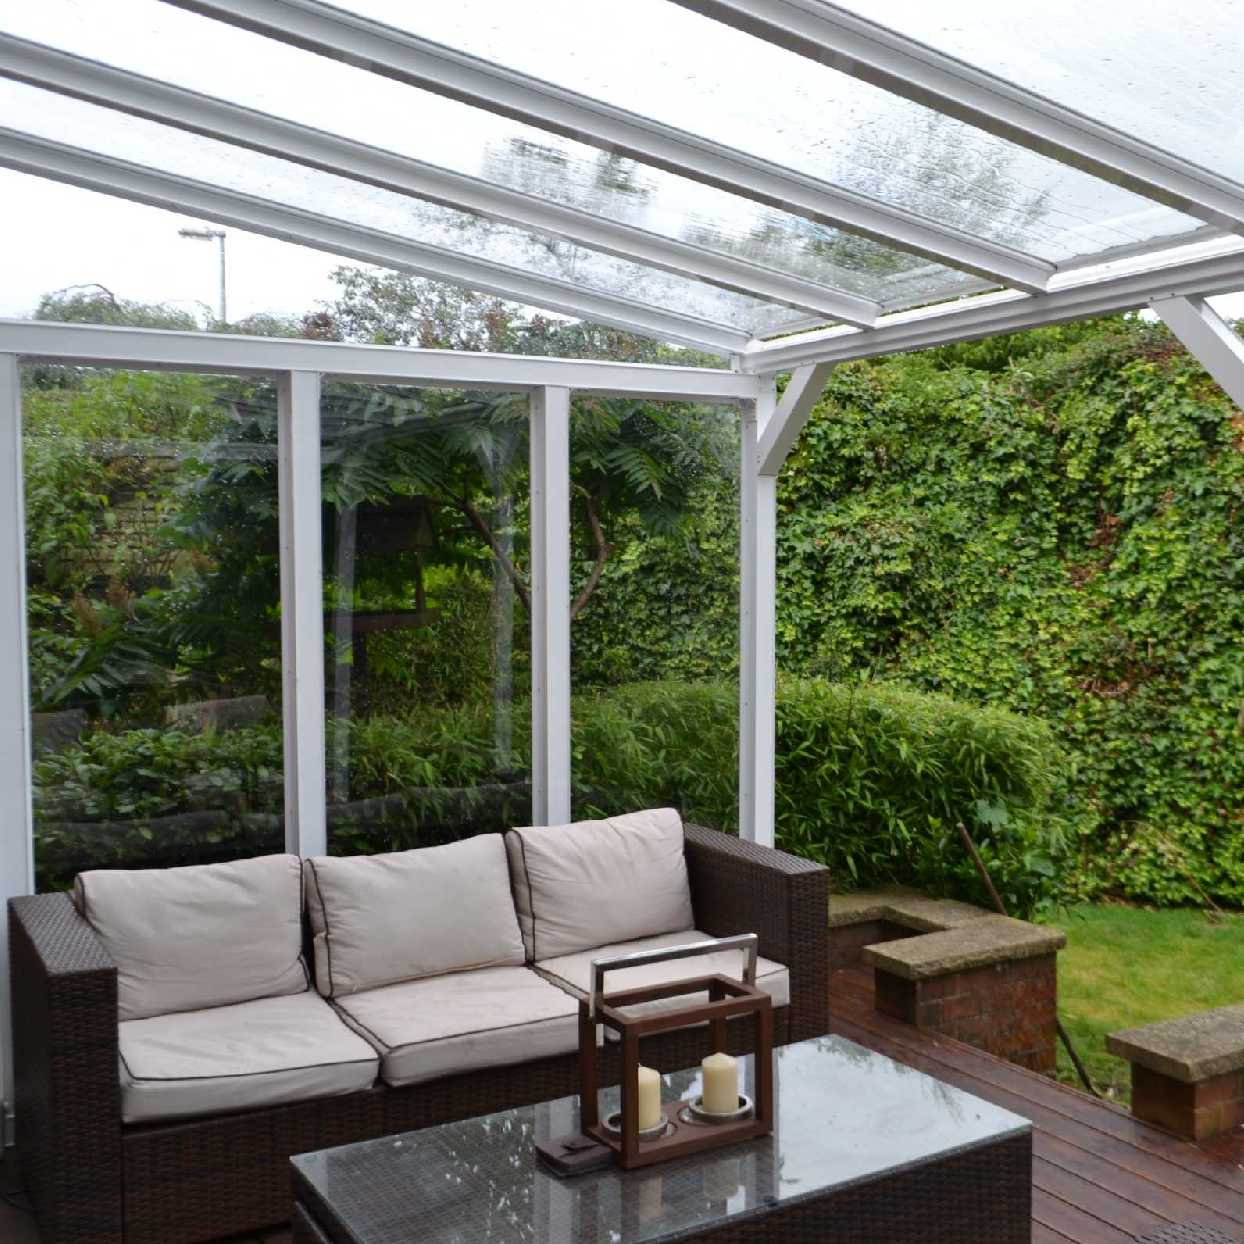 Great selection of Omega Smart Lean-To Canopy with 16mm Polycarbonate Glazing - 9.2m (W) x 4.0m (P), (5) Supporting Posts